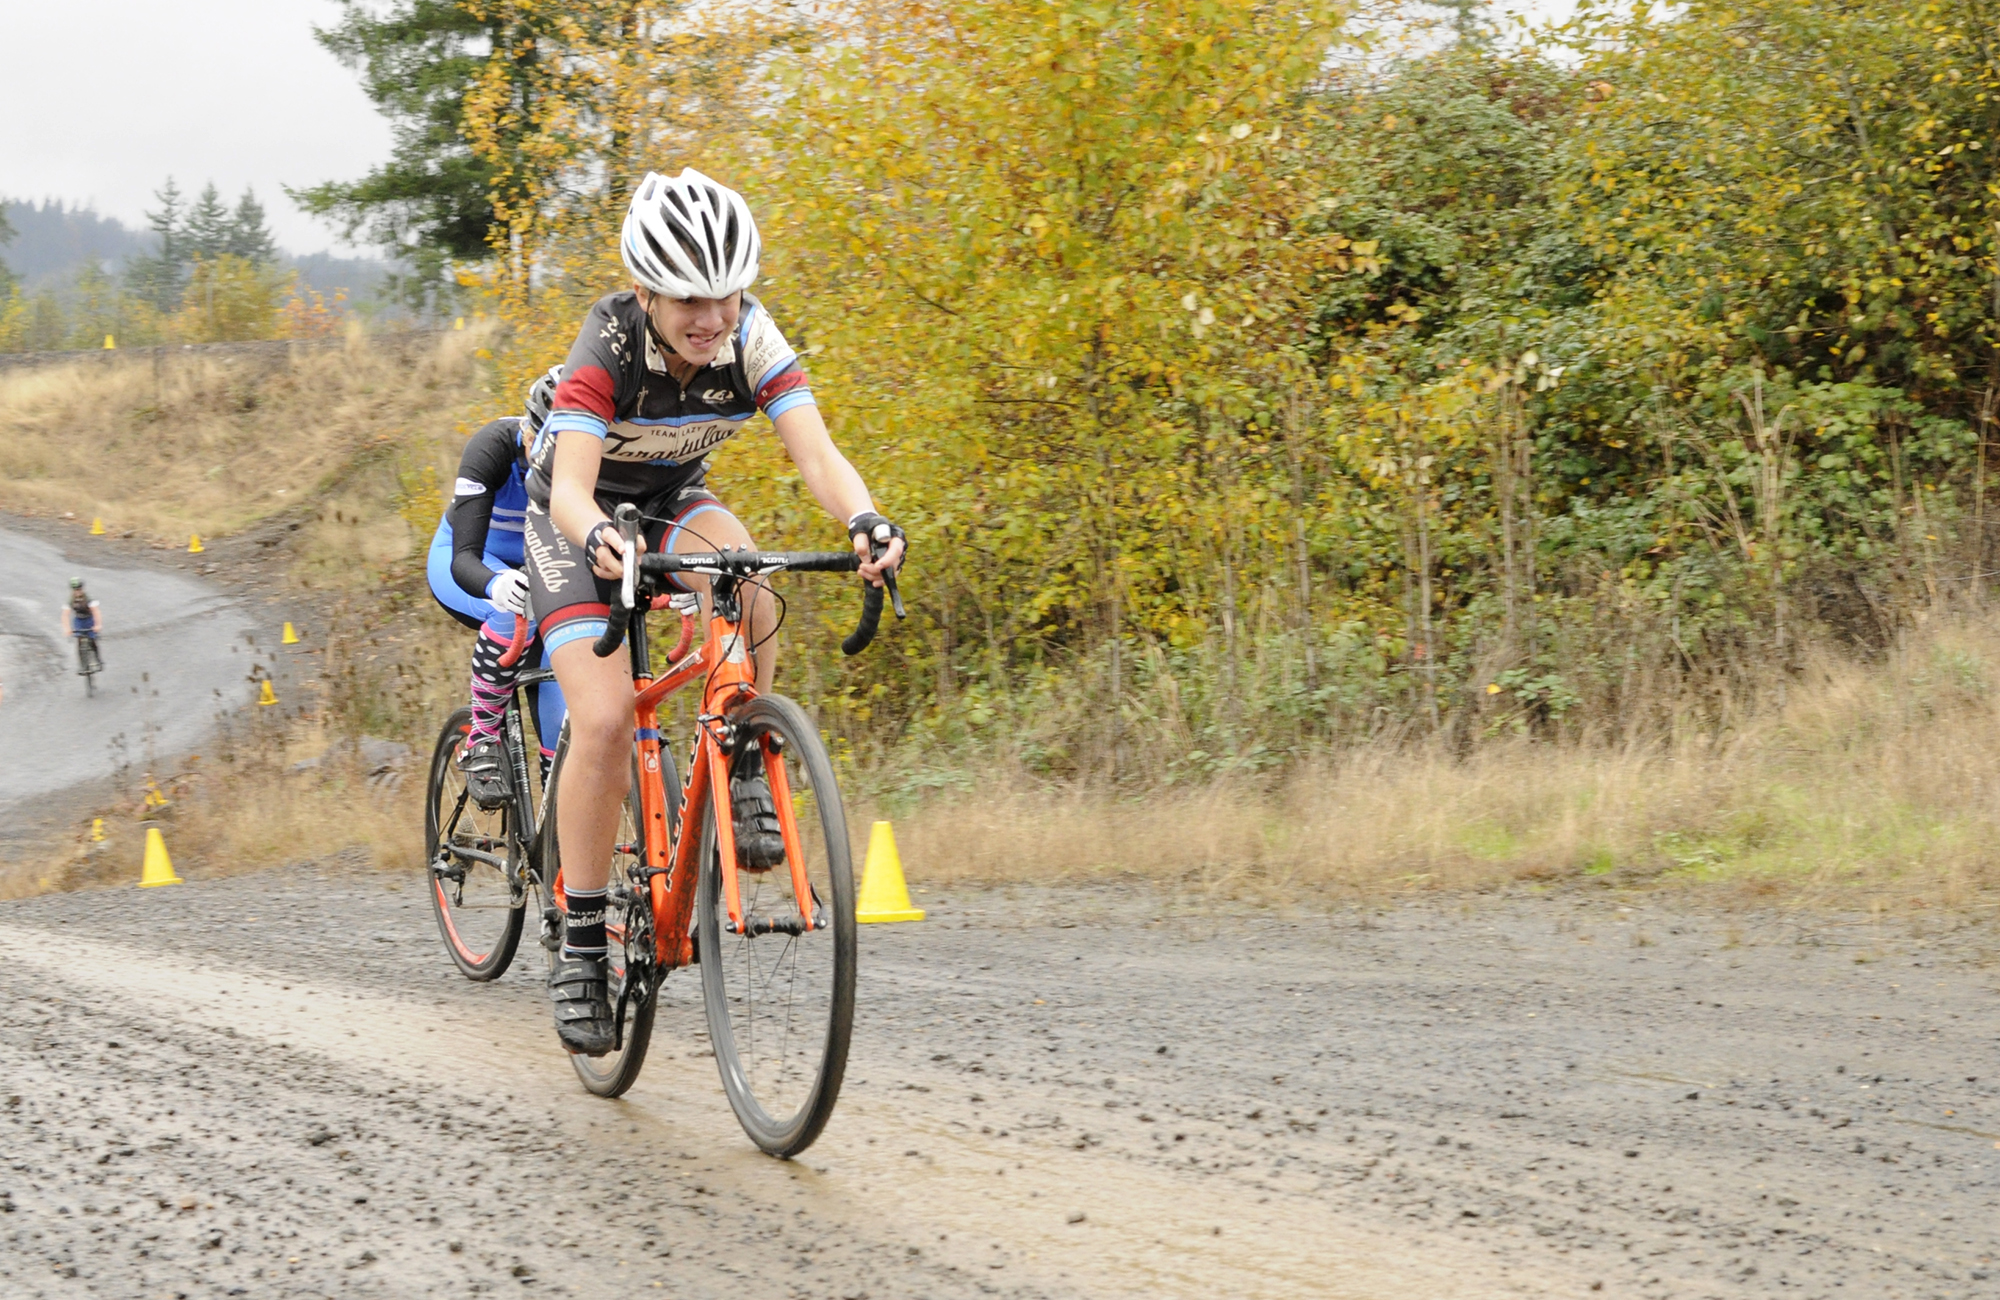 SellwoodCycle_CCBP_12